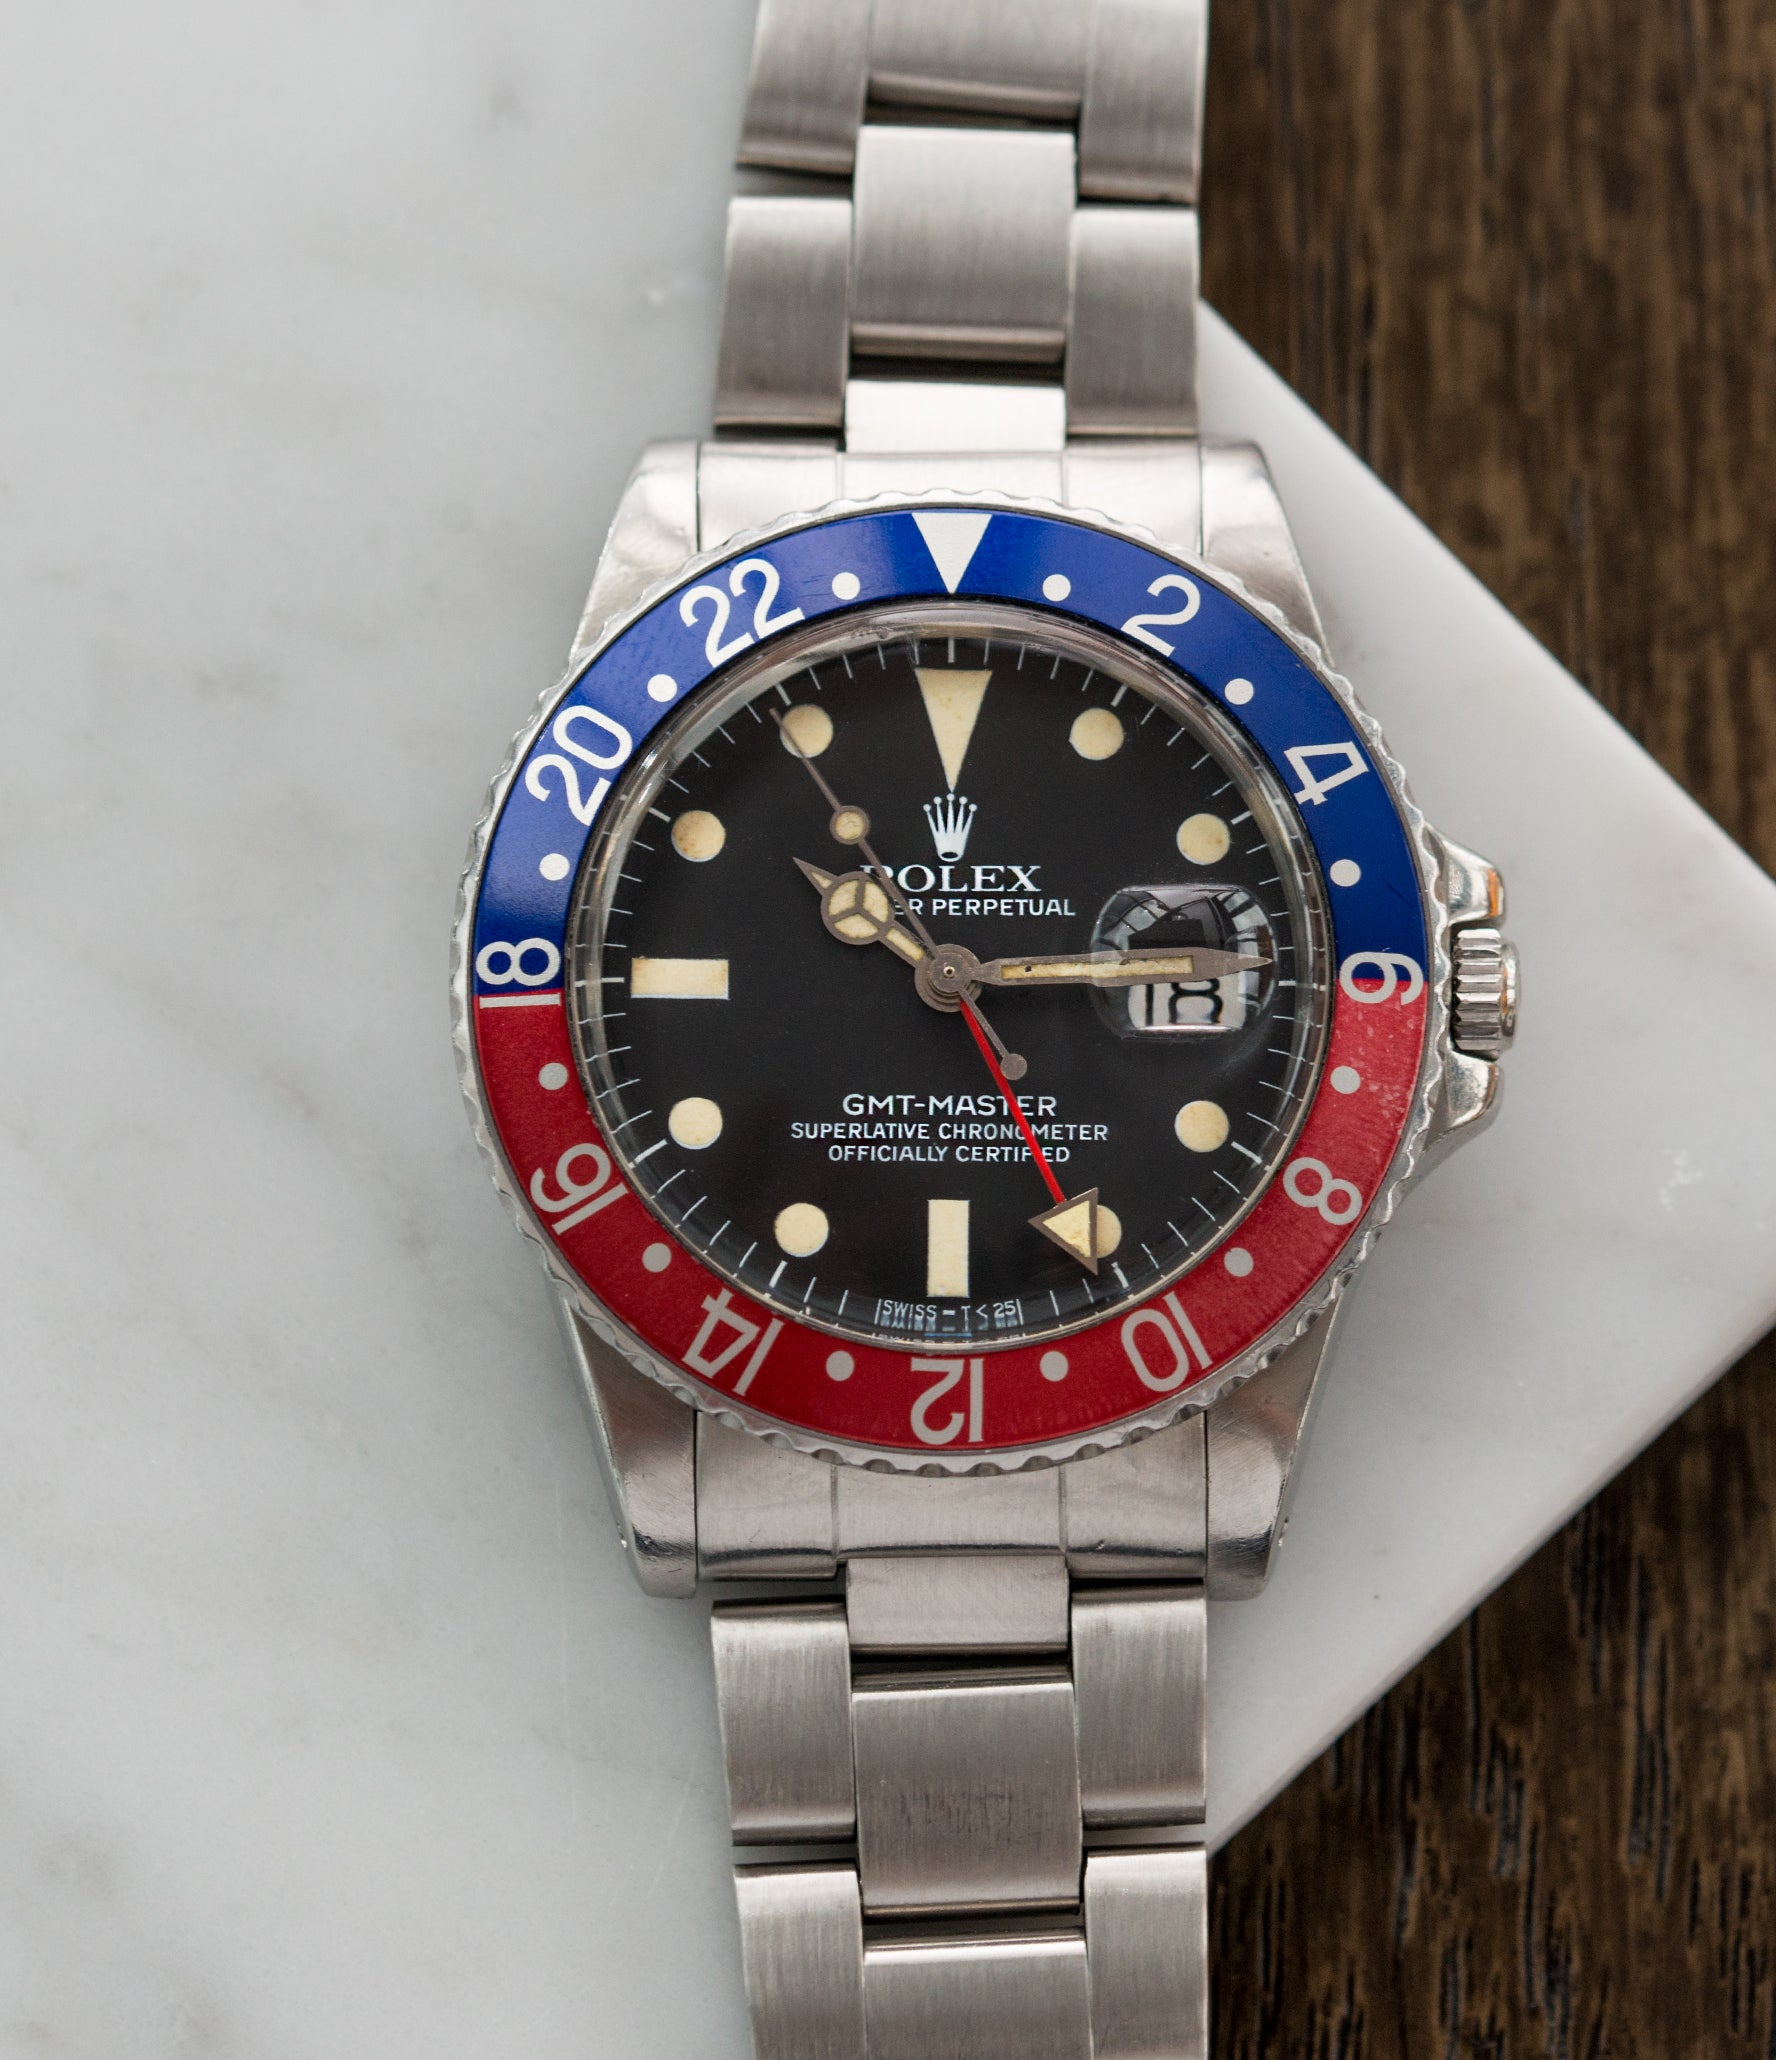 for sale Rolex 16750 GMT-Master Pepsi bezel steel sport traveller watch for sale online at A Collected Man London vintage watch specialist